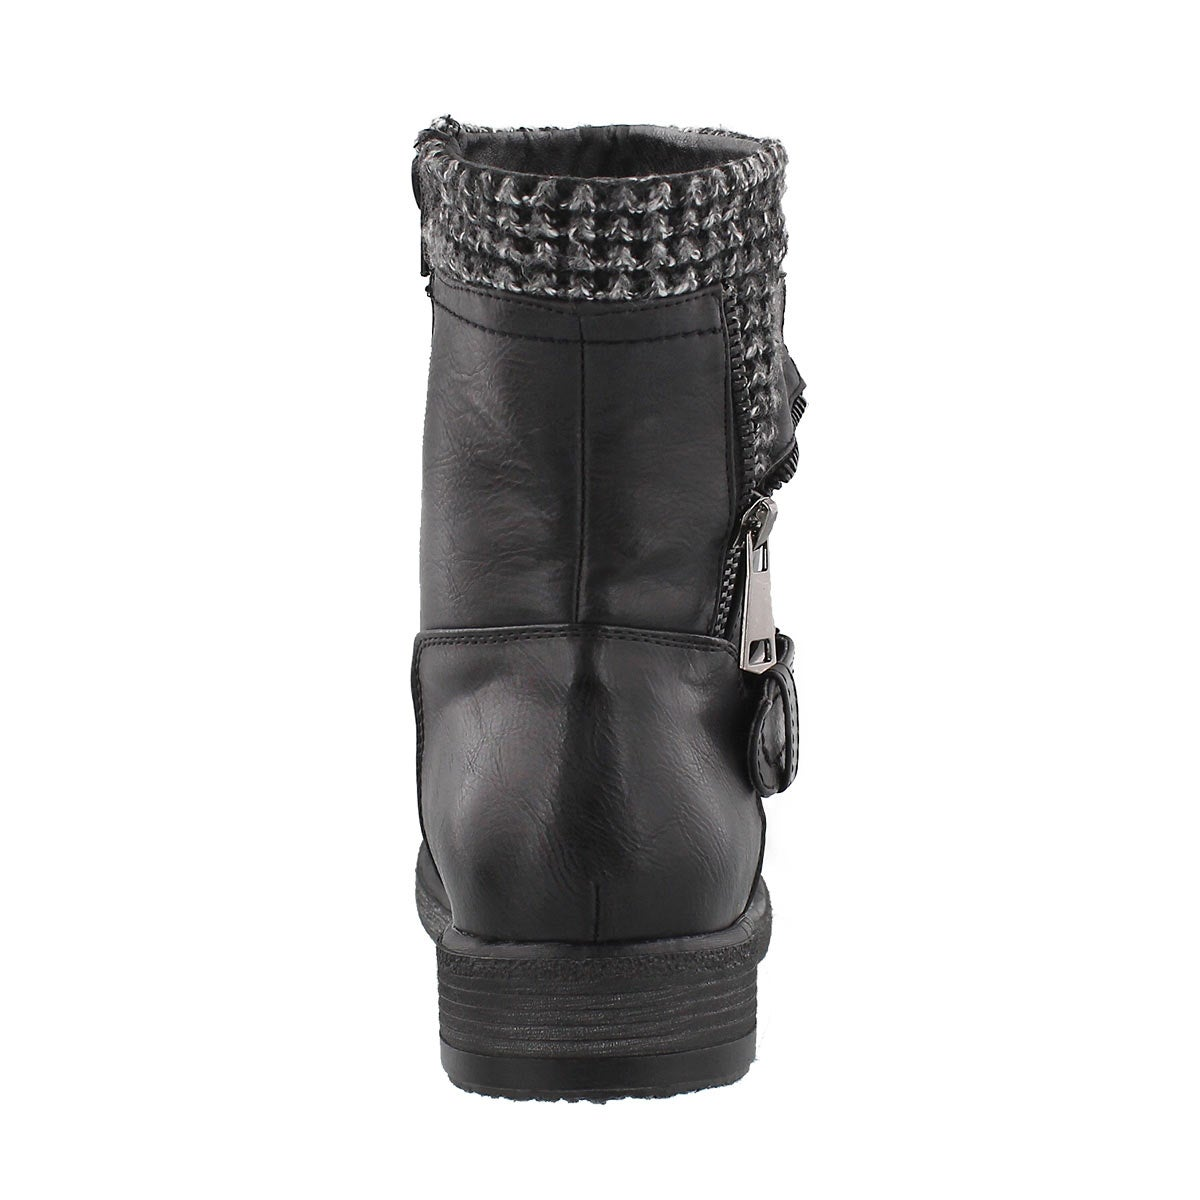 Lds Sasha black side zip combat boot